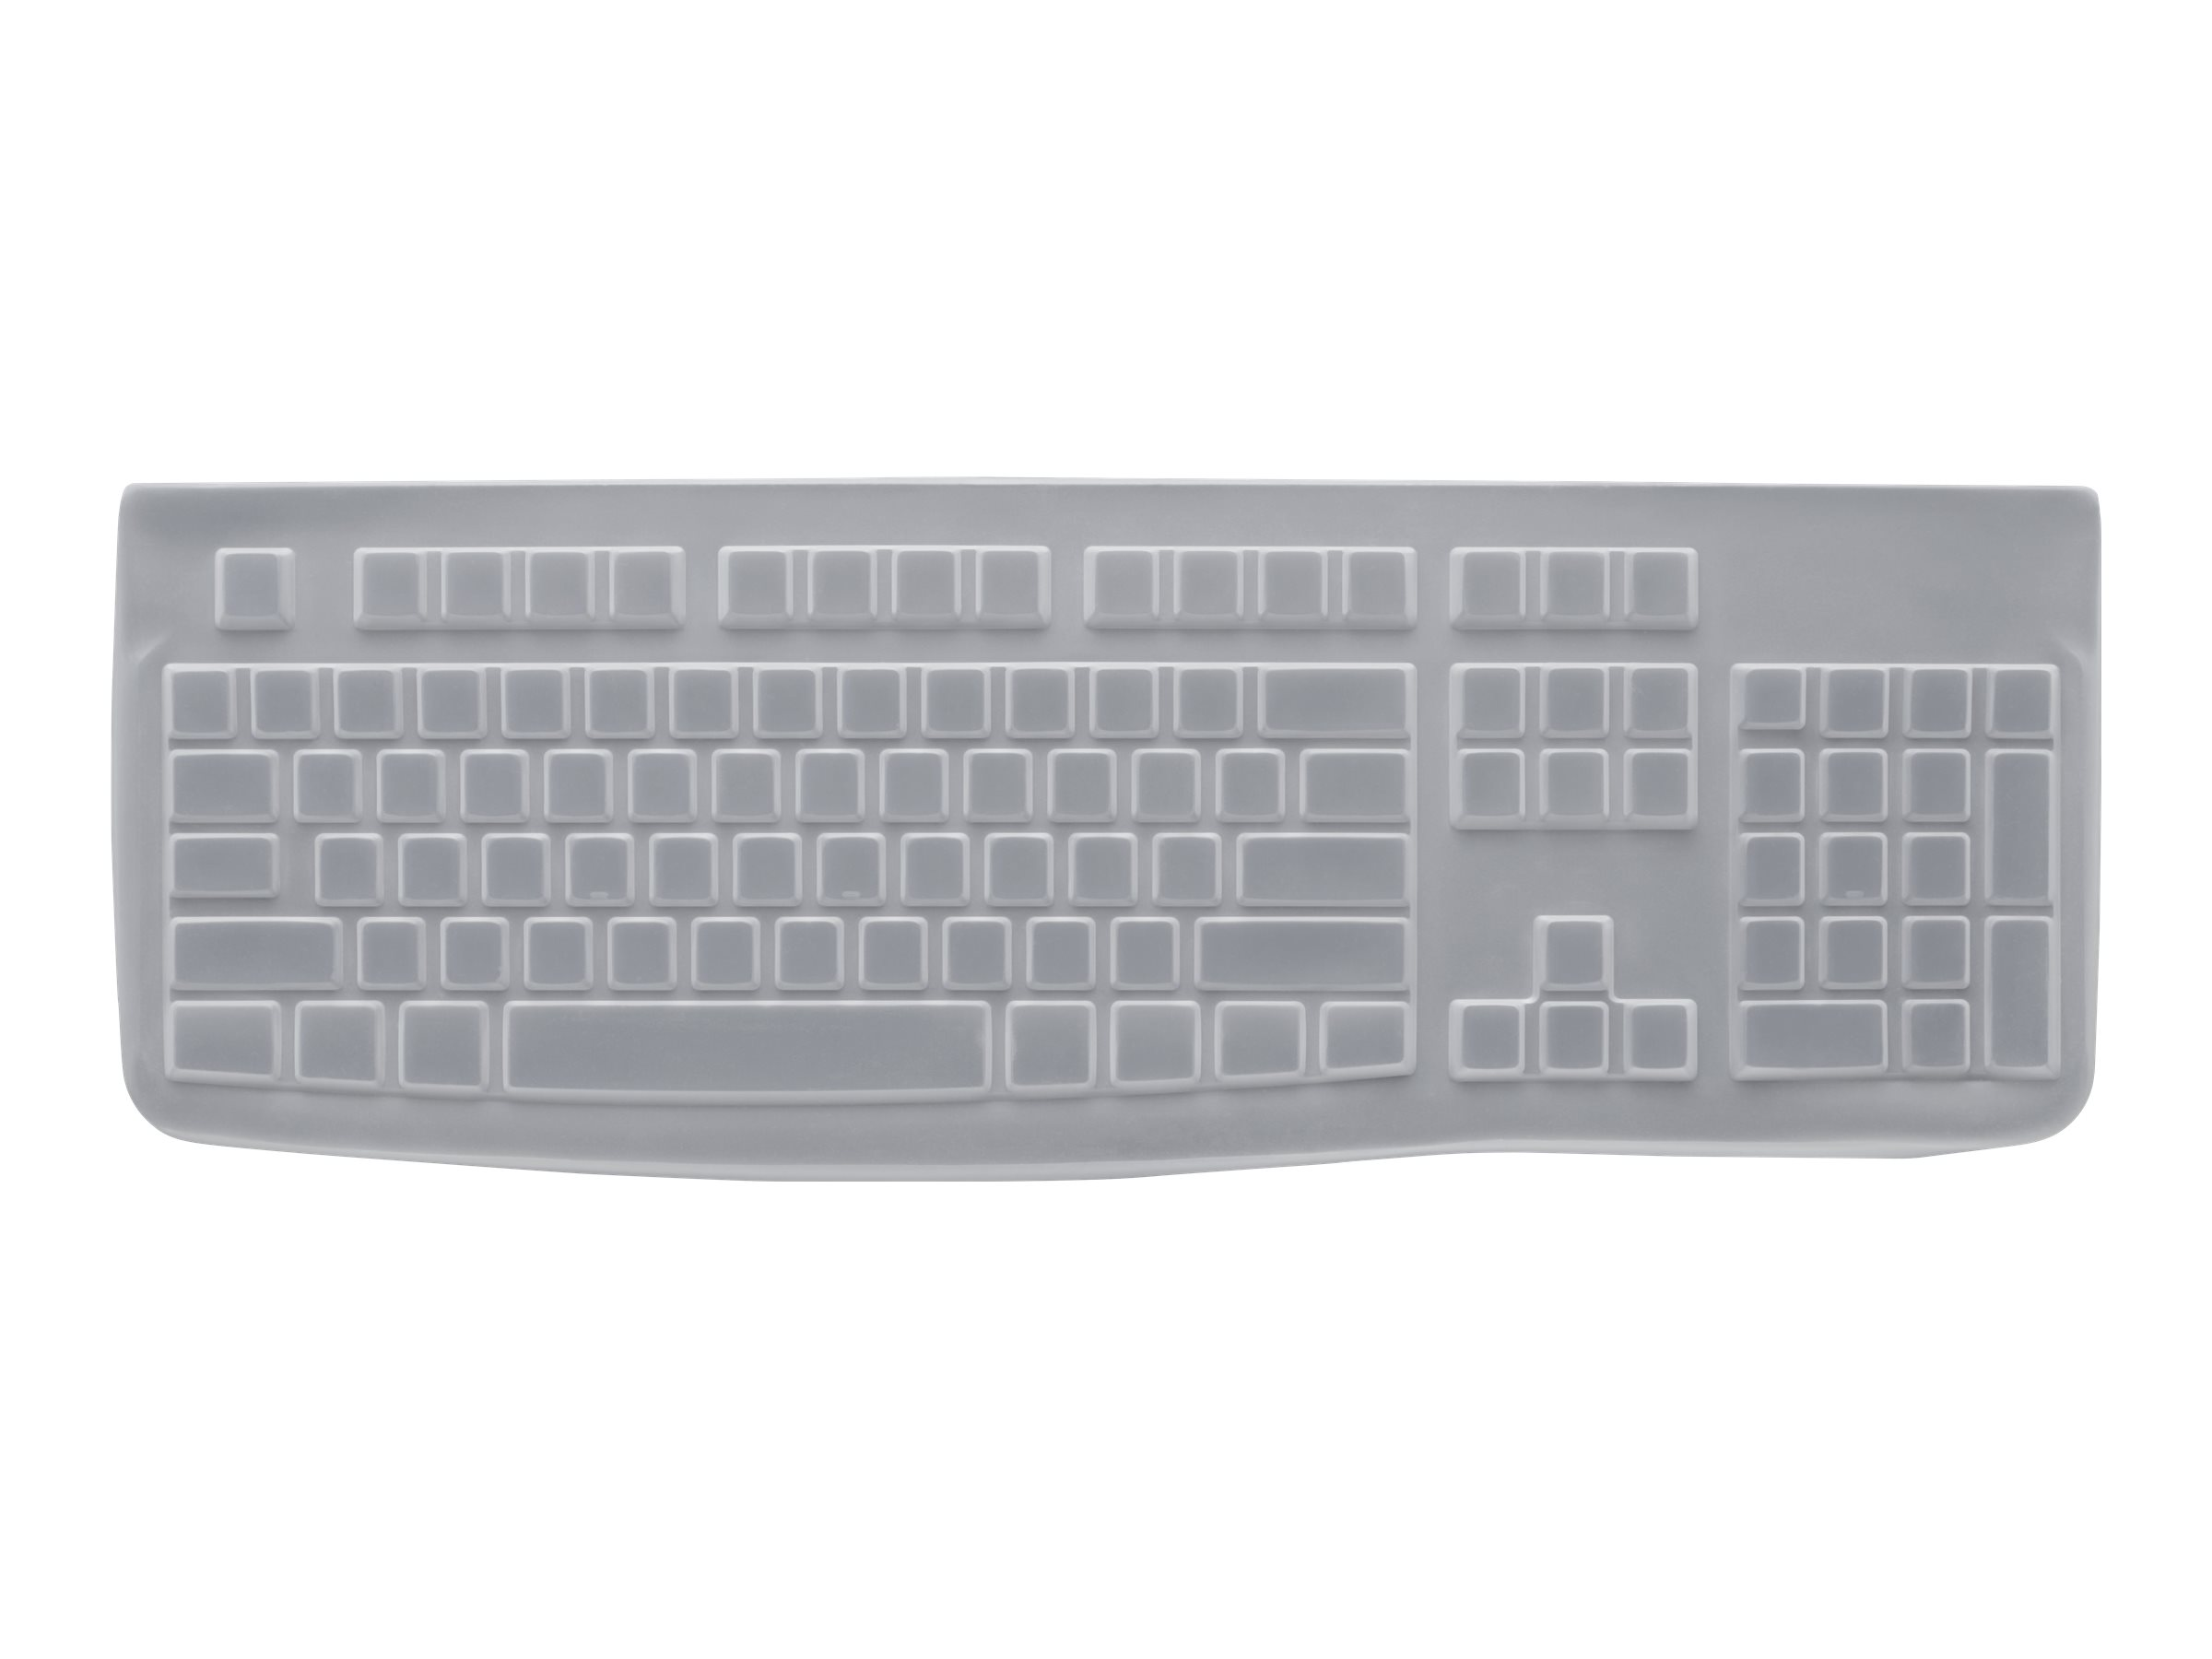 Logitech K120 Keyboard for Education with Protective Keyboard Cover - keyboard